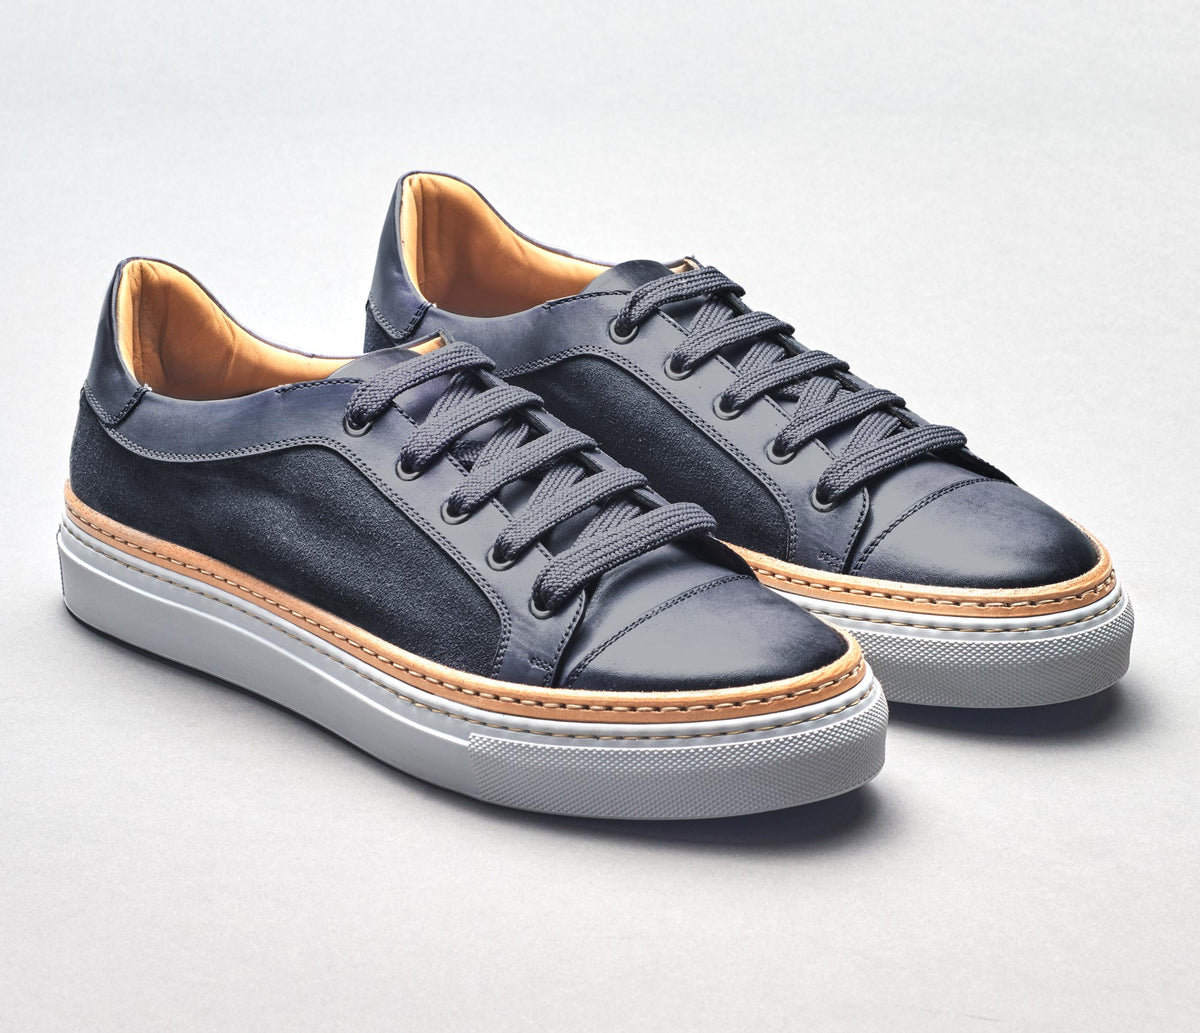 SB646 Calf / Velour Gunmetal